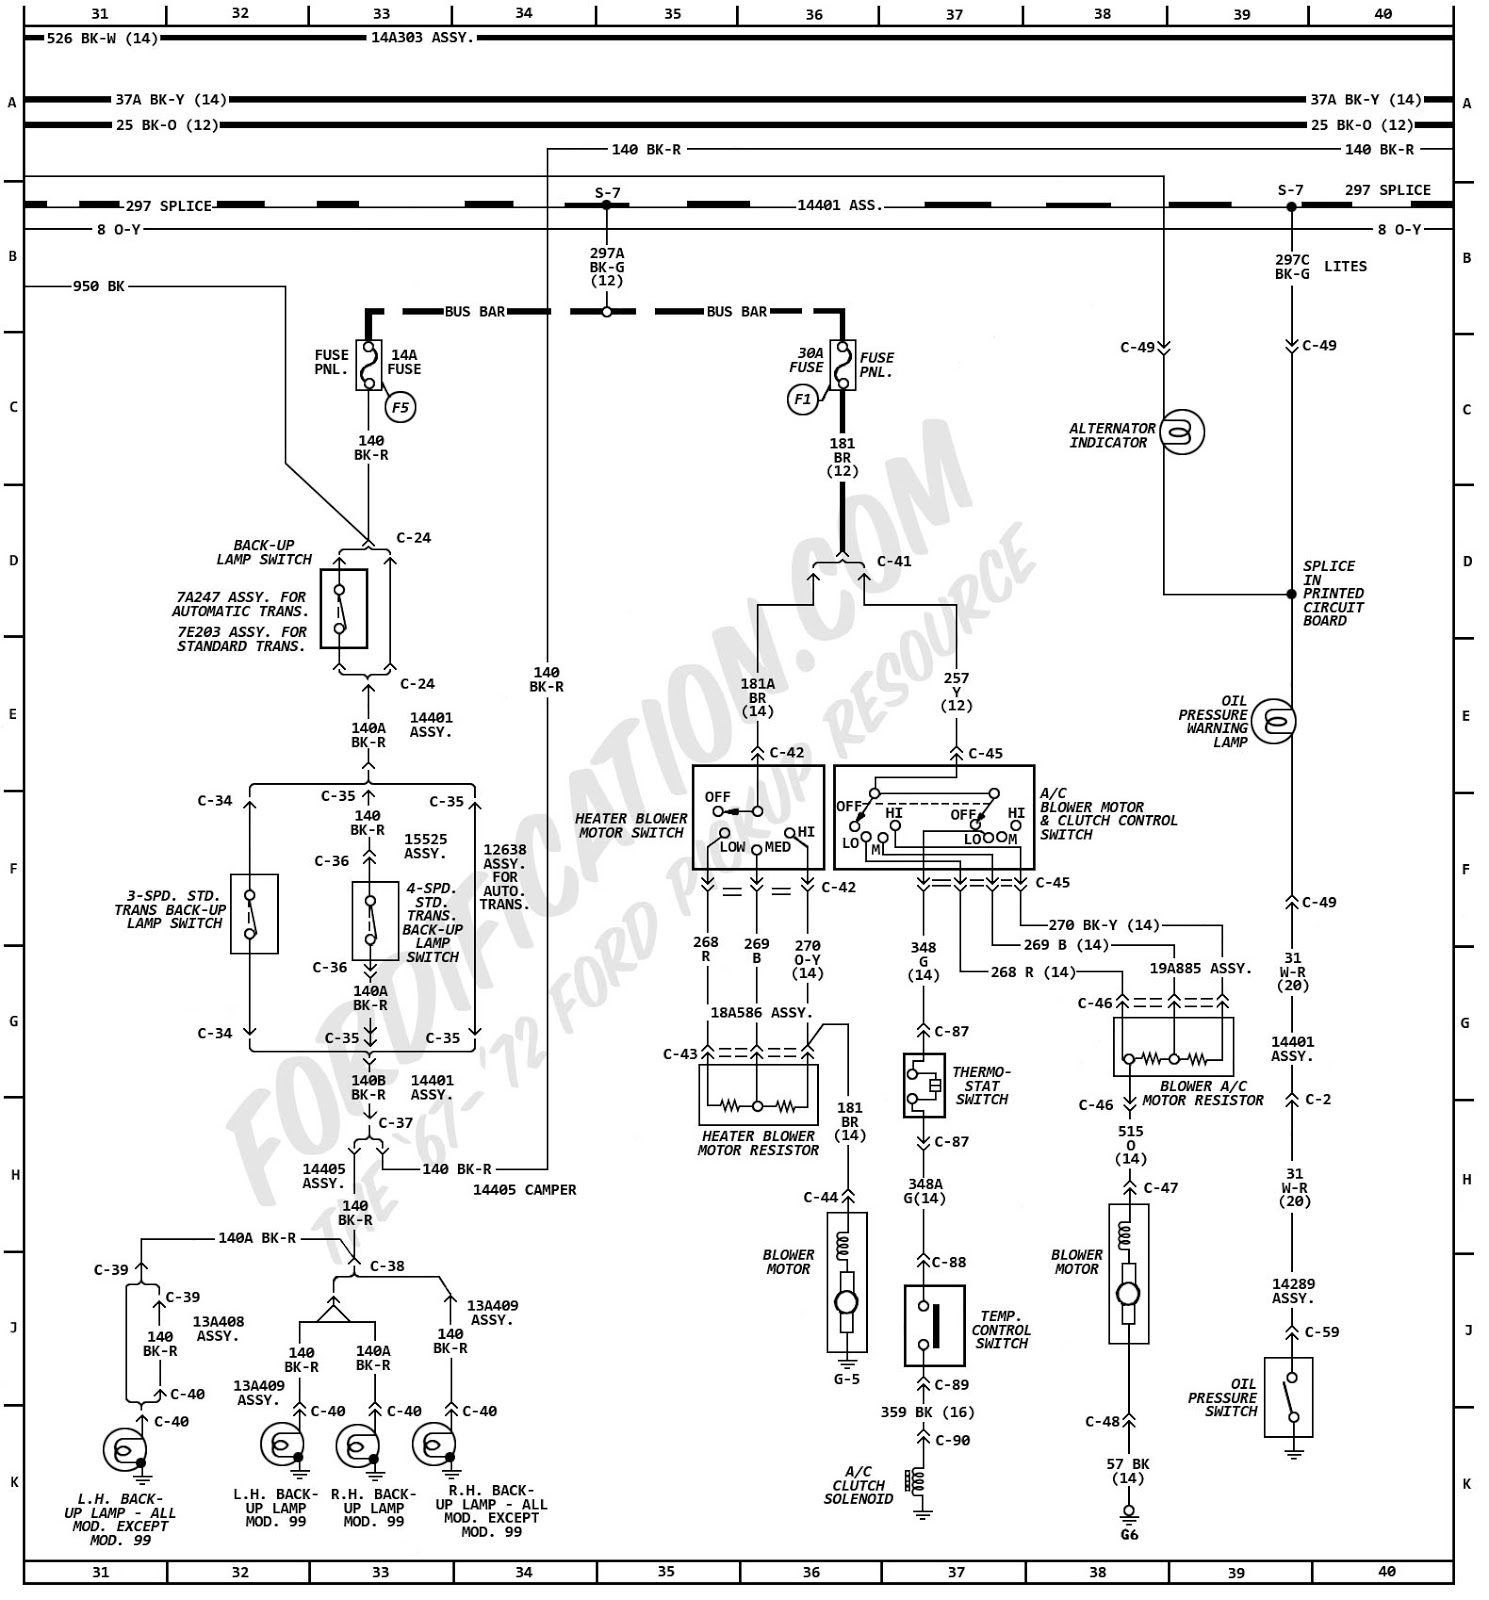 Diagram Weg Motors Wiring Diagram Full Version Hd Quality Wiring Diagram Diagramgansz Sistecom It